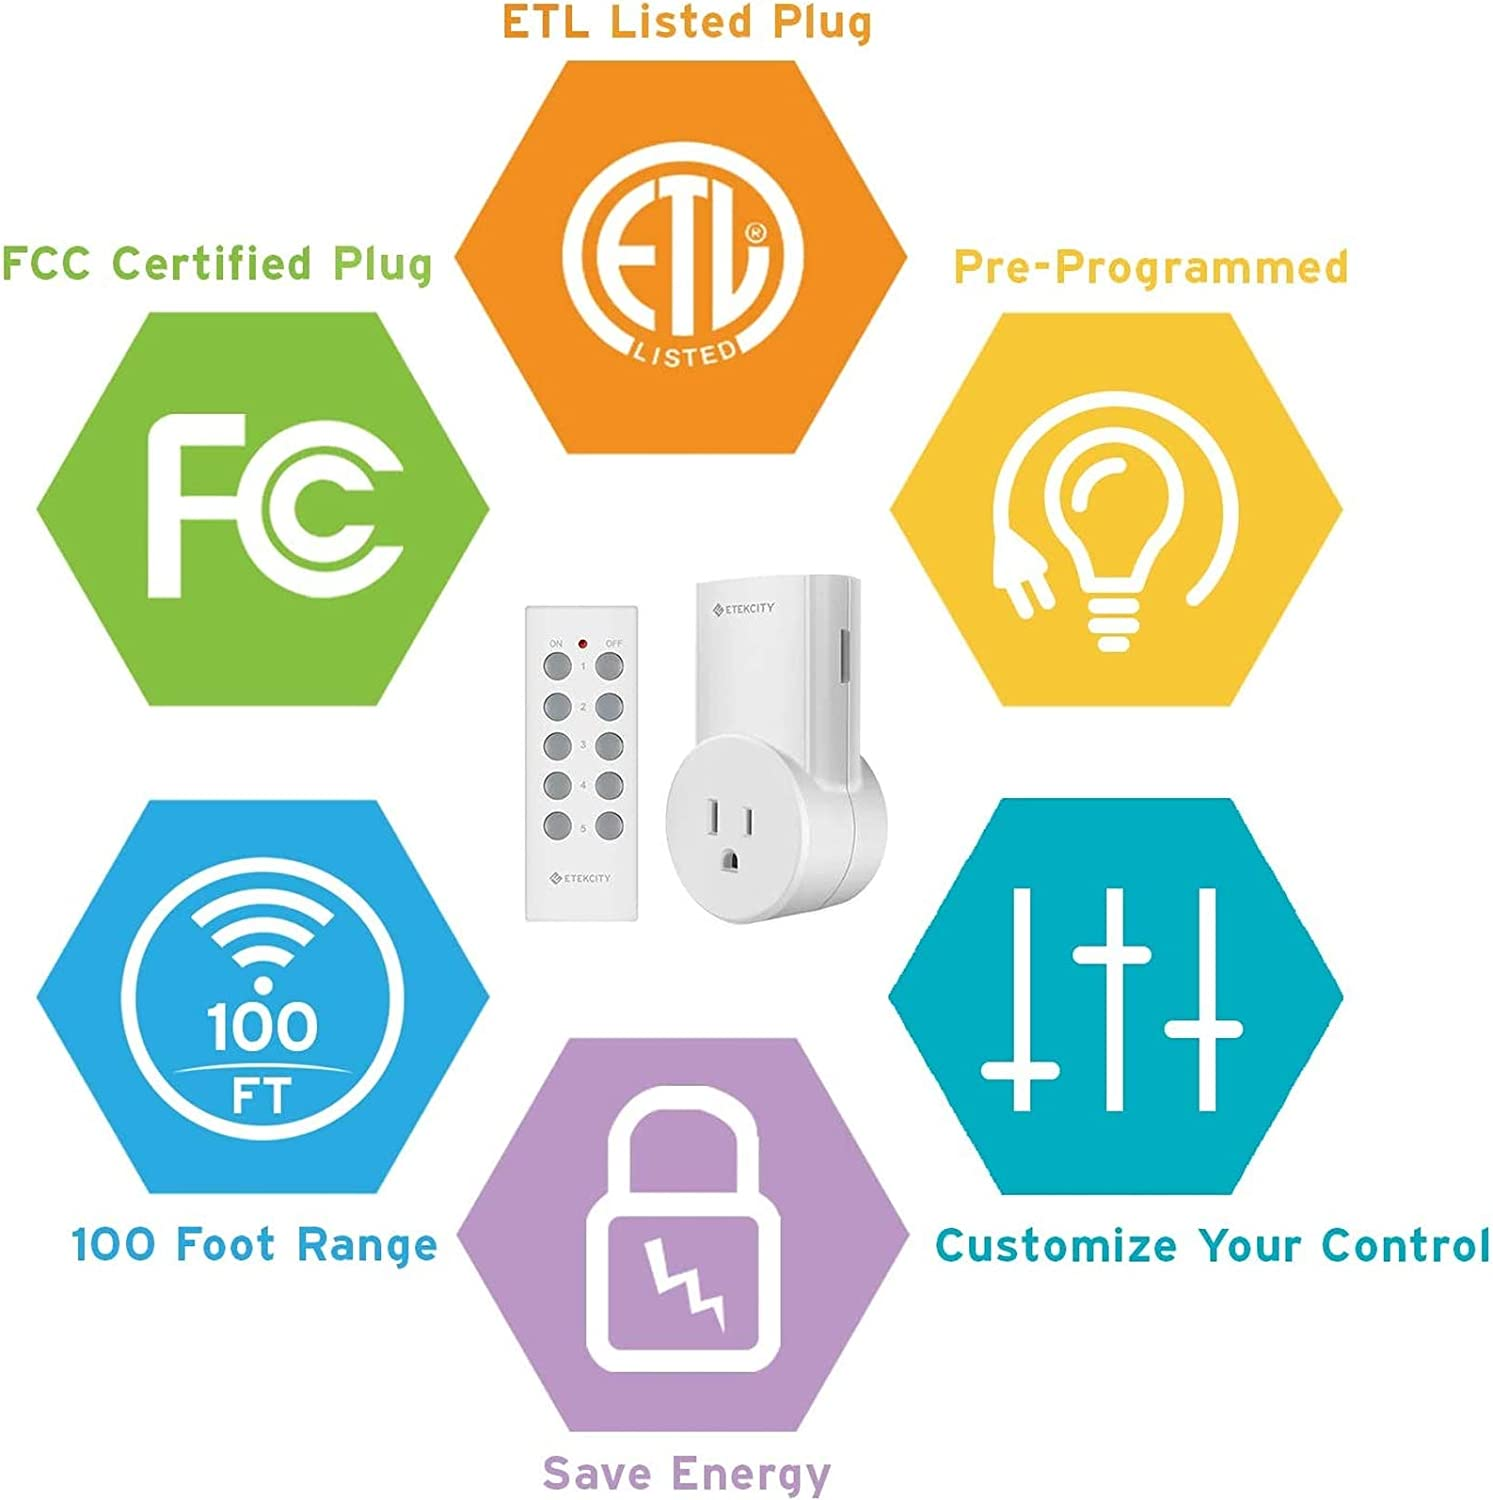 Etekcity Wireless Remote Control Outlet Light Switch for Lights, Lamps, Christmas Decorations, Plug and Go, Up to 100 ft. Range, FCC & ETL Listed, White (Learning Code, 5Rx-2Tx)